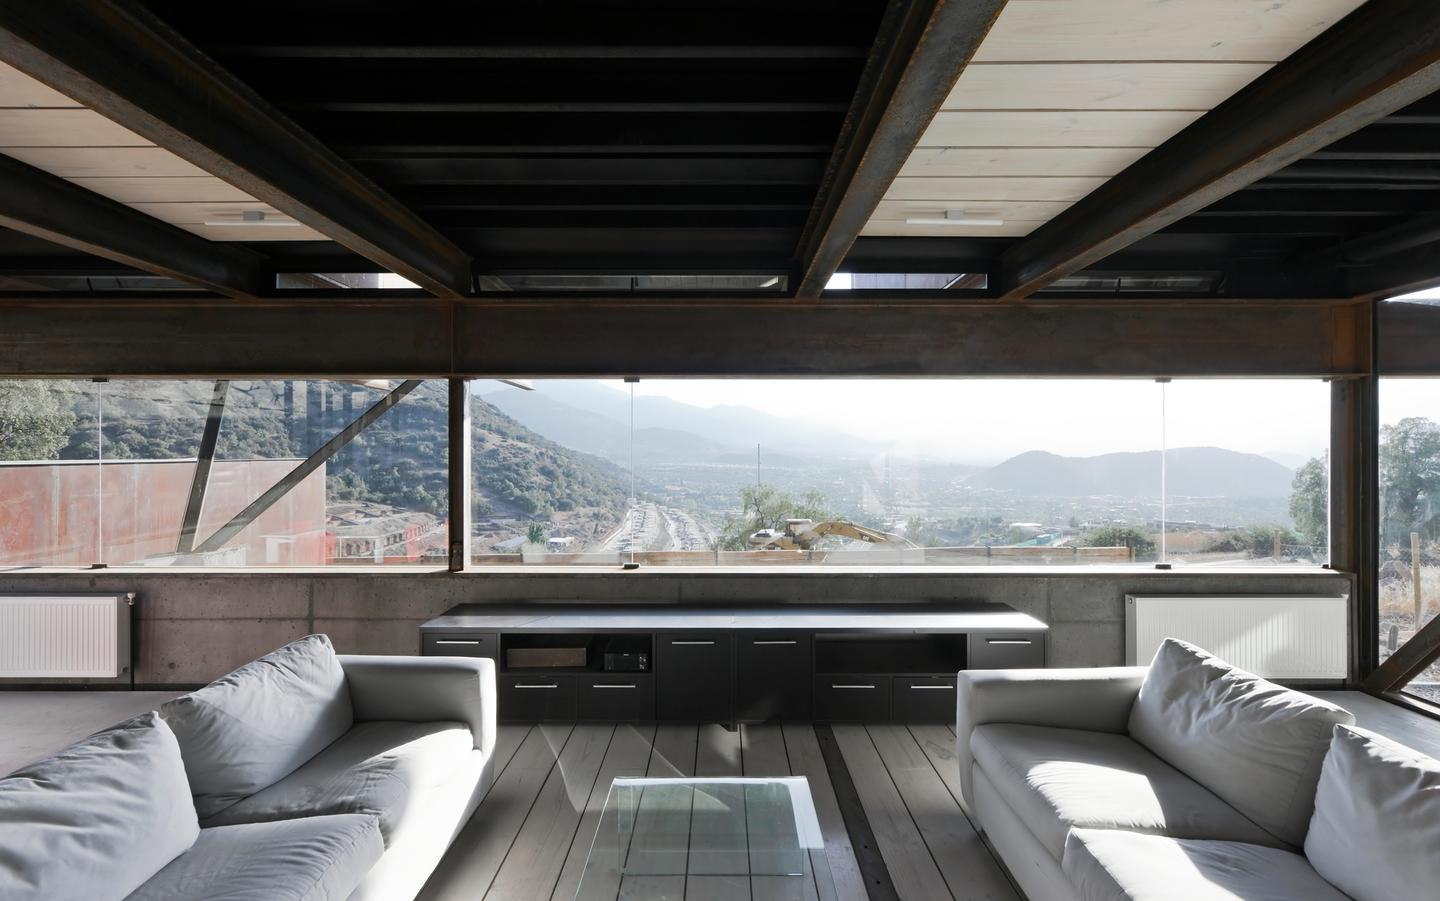 Caterpillar House is located on a hillside just outside Chile's capital city Santiago (Photo: Sergio Pirrone)